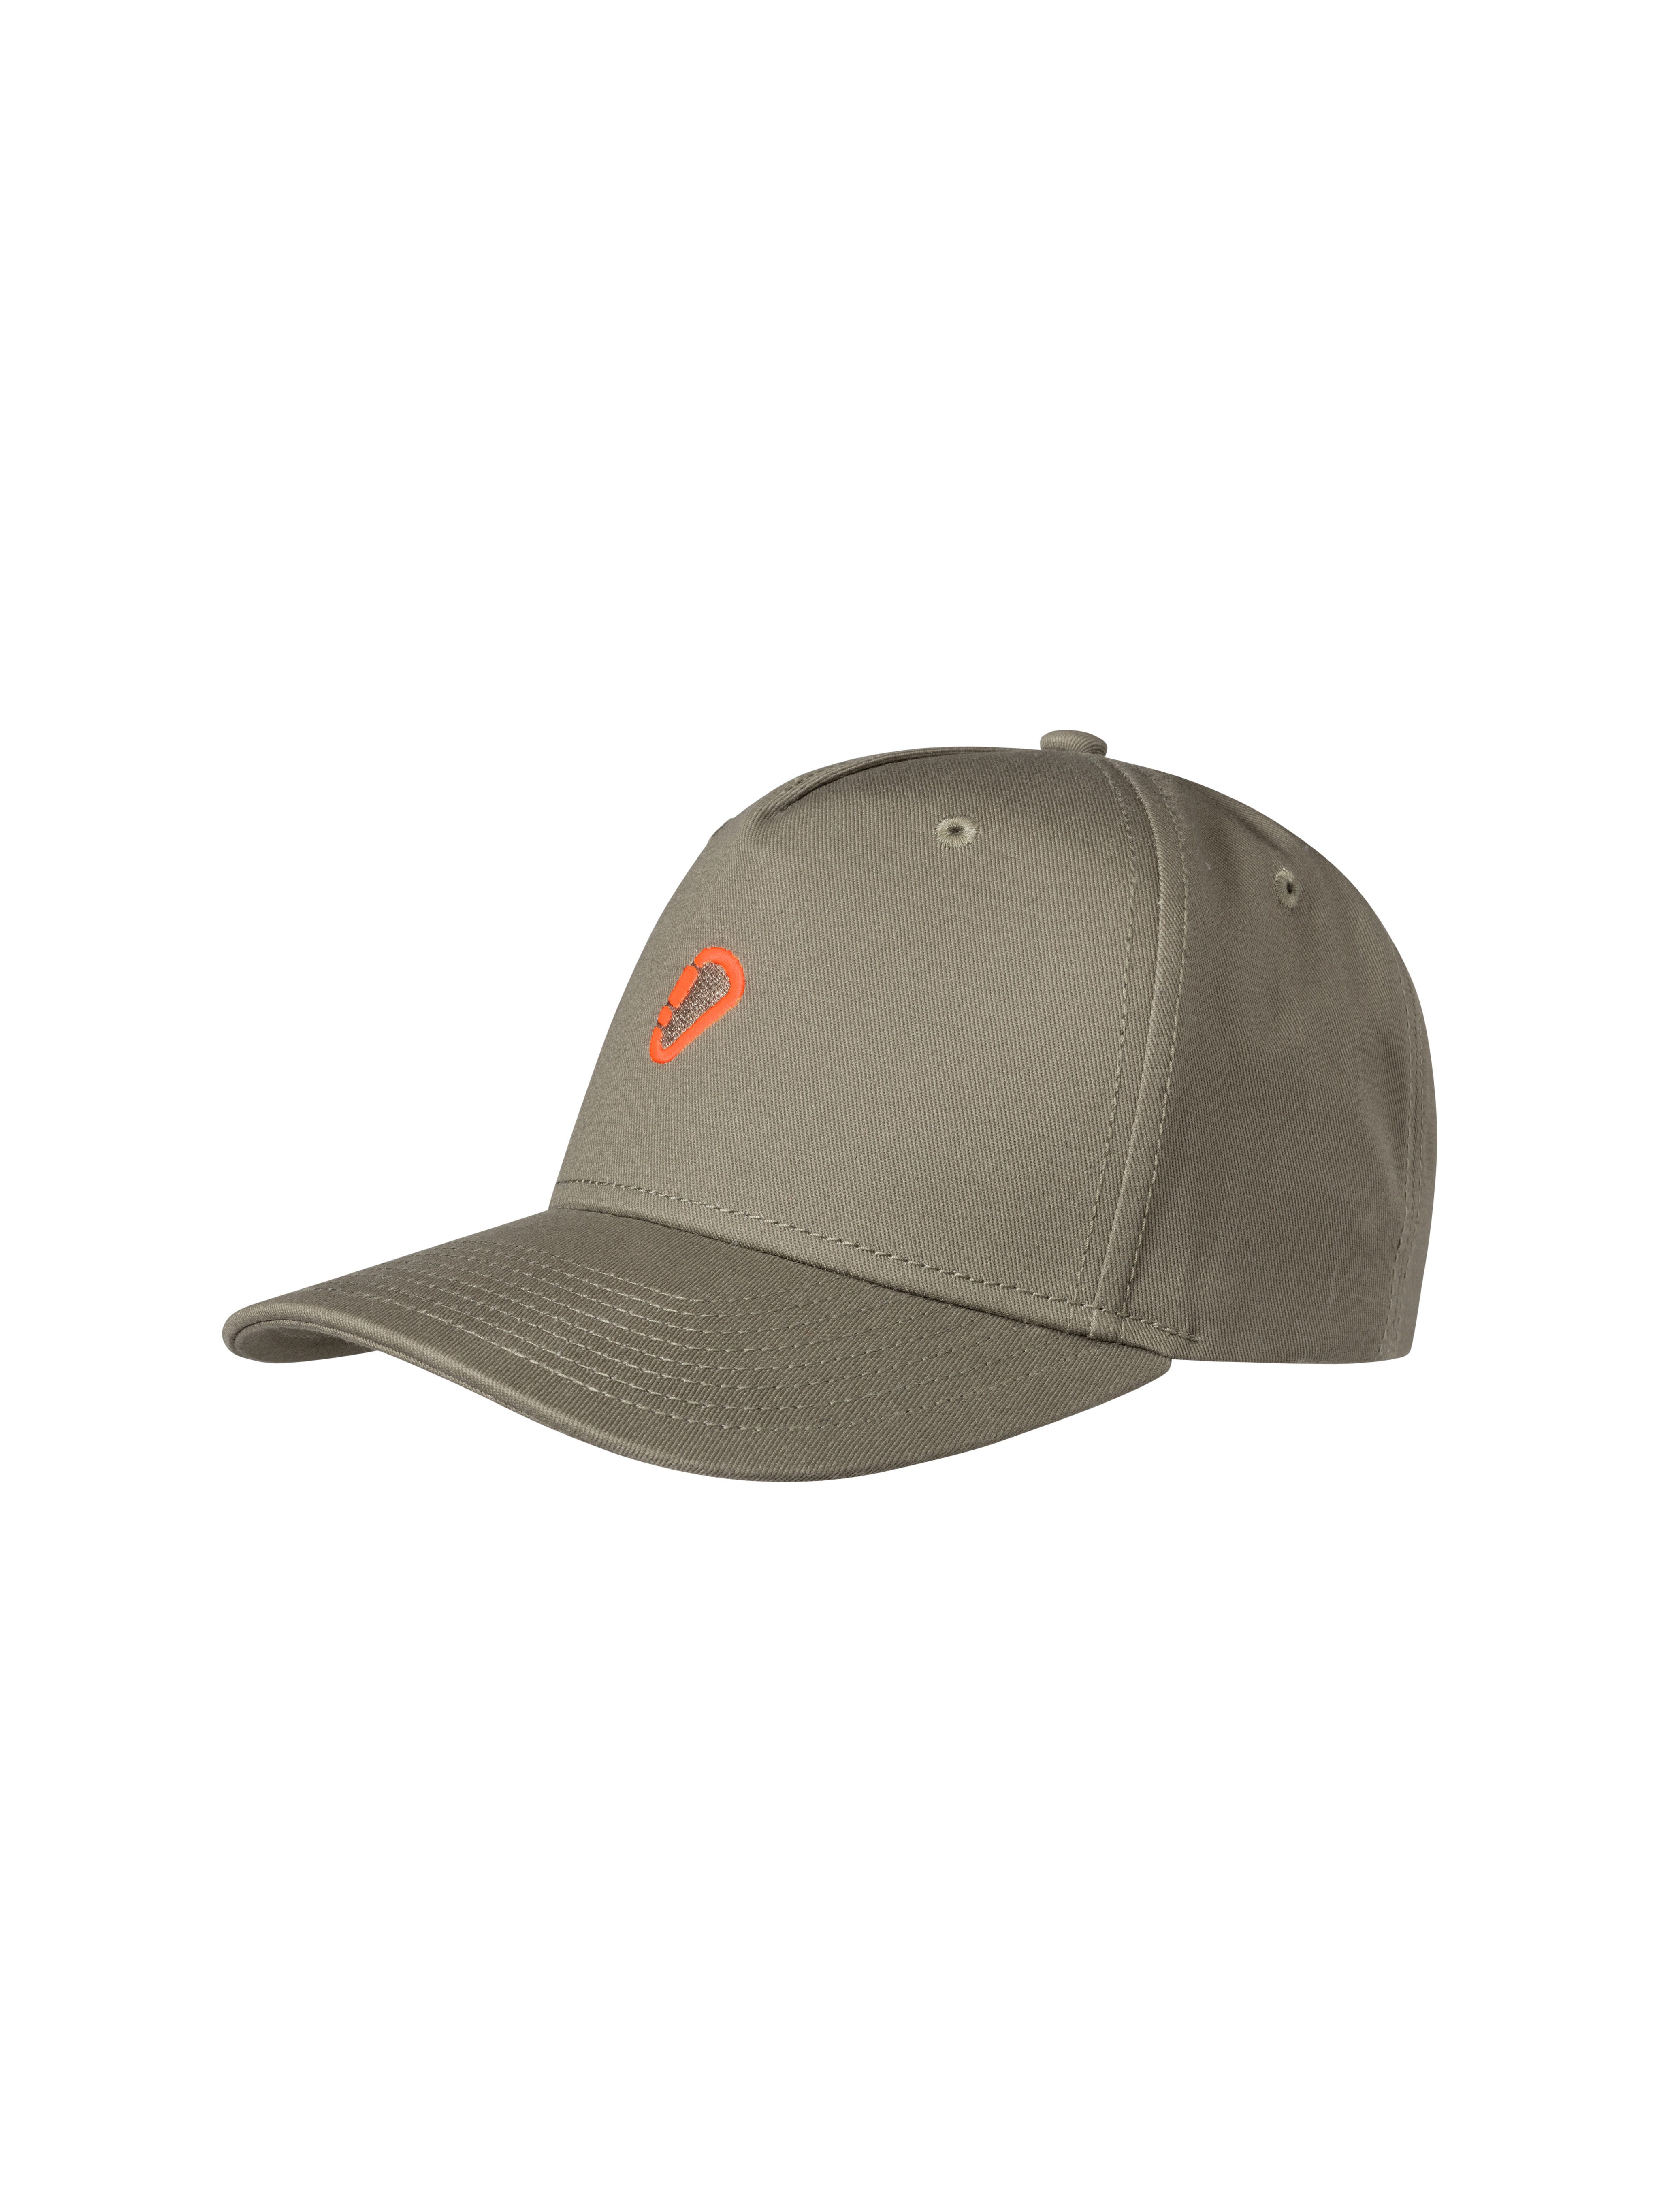 Mountain Cap product image